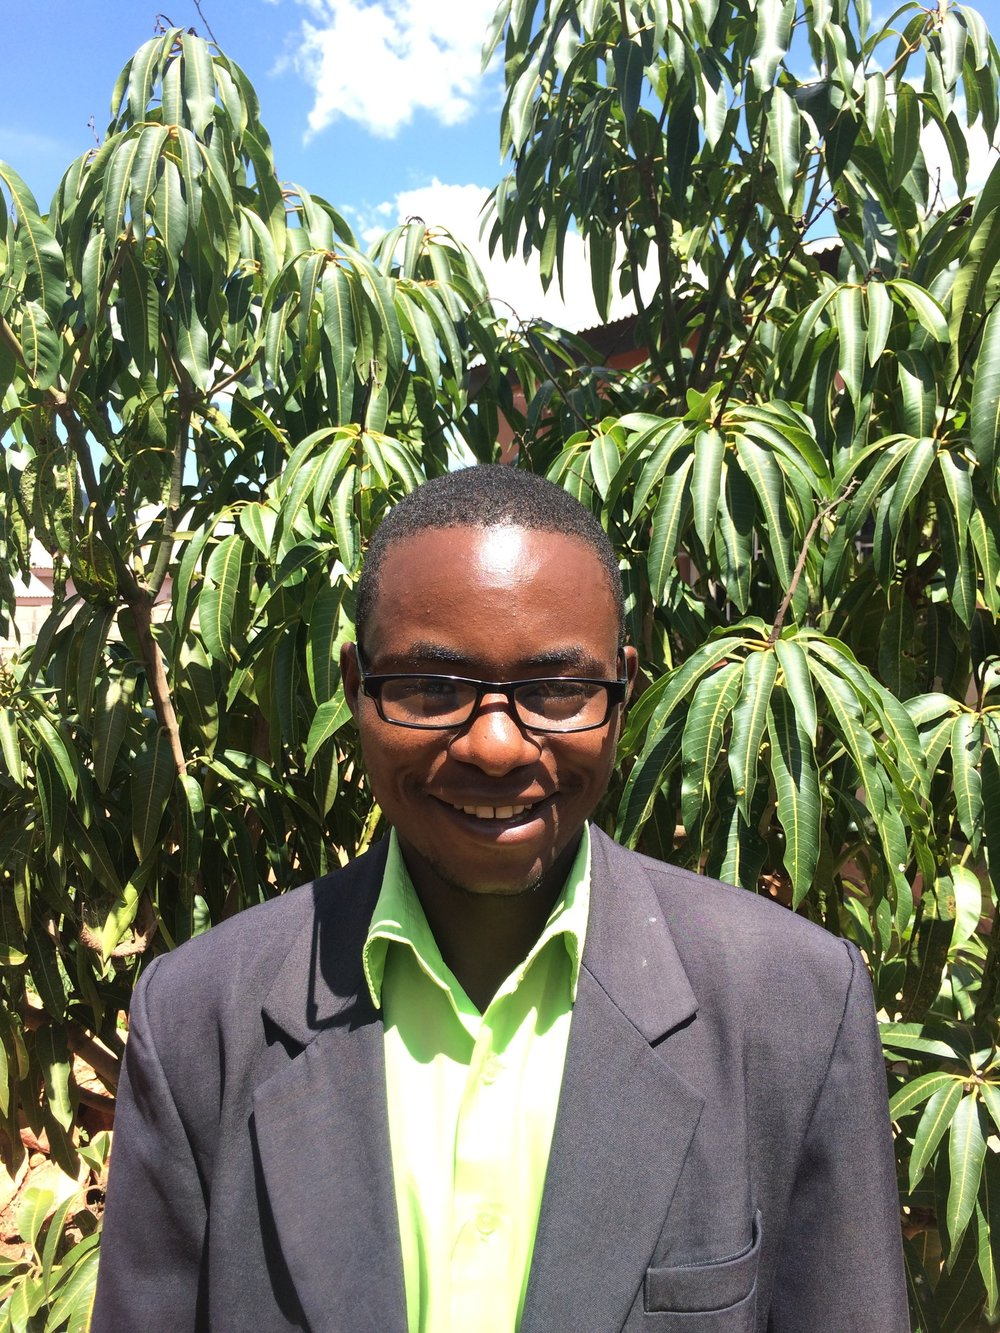 Masauso Banda, Teacher Supervisor Sinda   Masauso Ziyenera Banda joined Impact Network in January 2016, as a Grade 4 teacher. He had previously worked as a volunteer teacher at various community schools. In January 2017, Masauso was promoted to Deputy Teacher in Charge at Mnyaula Community School. In September 2017 he was promoted to Teacher Supervisor for Sinda.